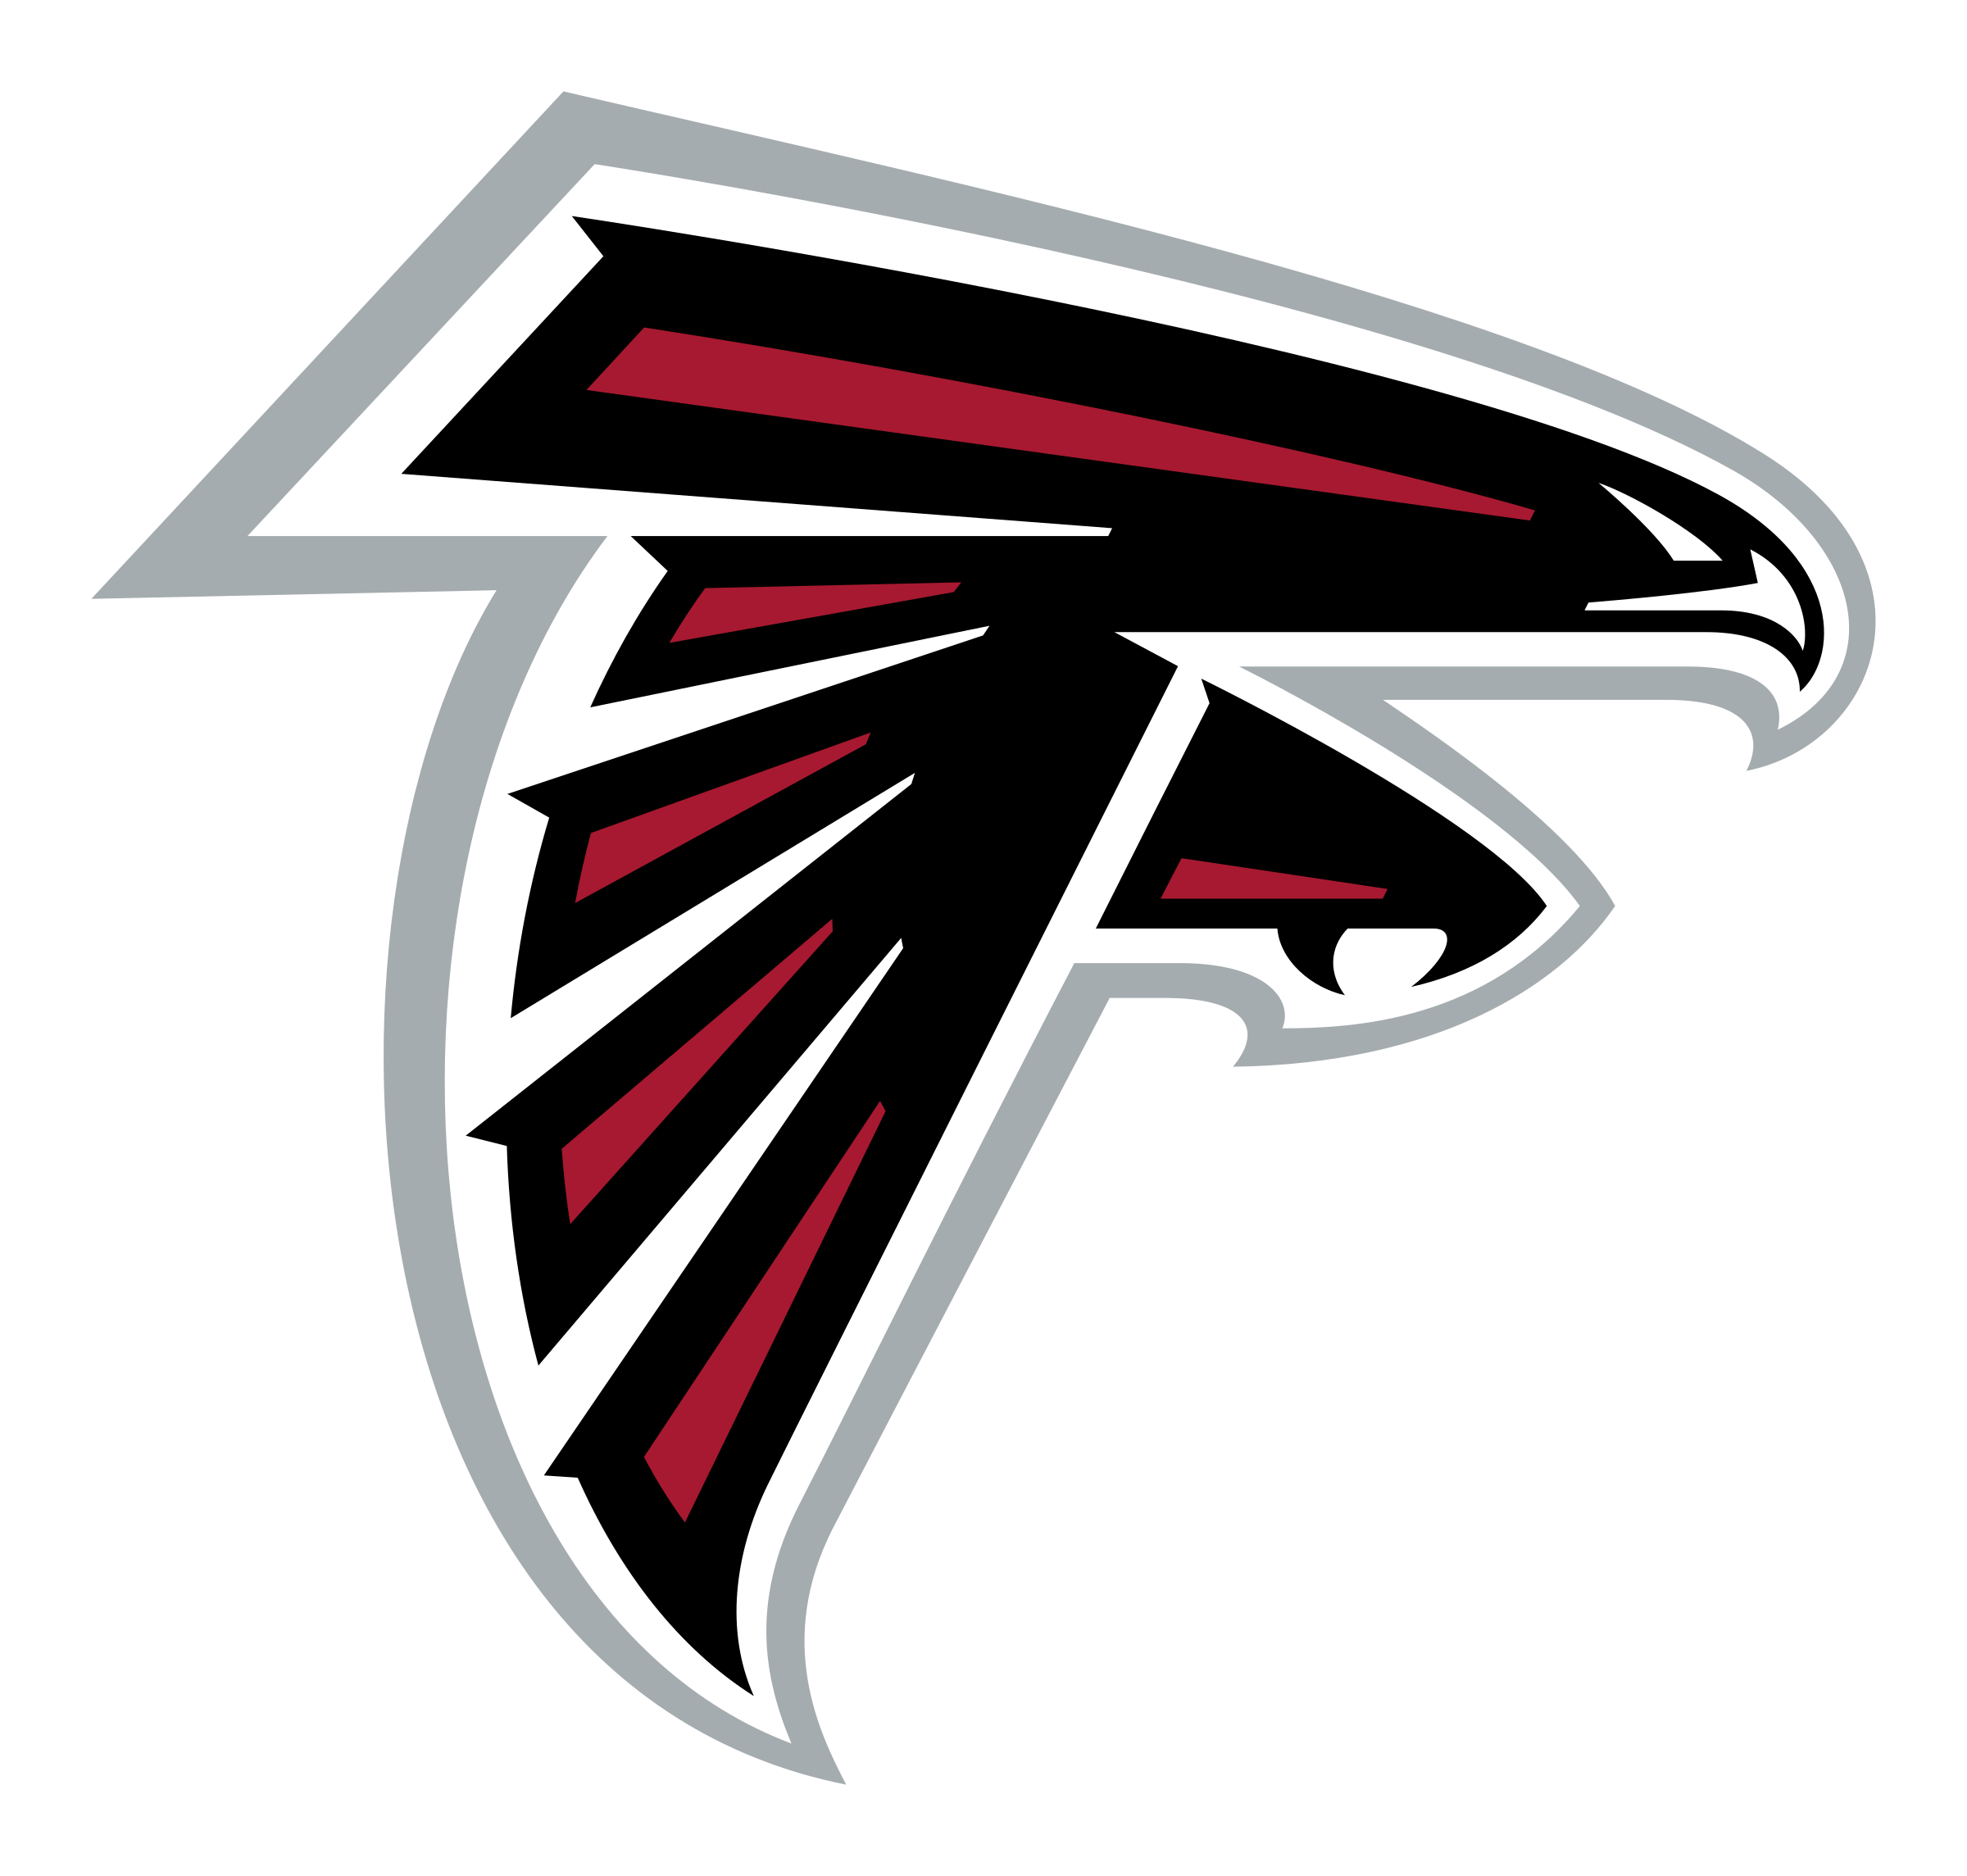 Falcons svg. Atlanta logo png transparent jpg download